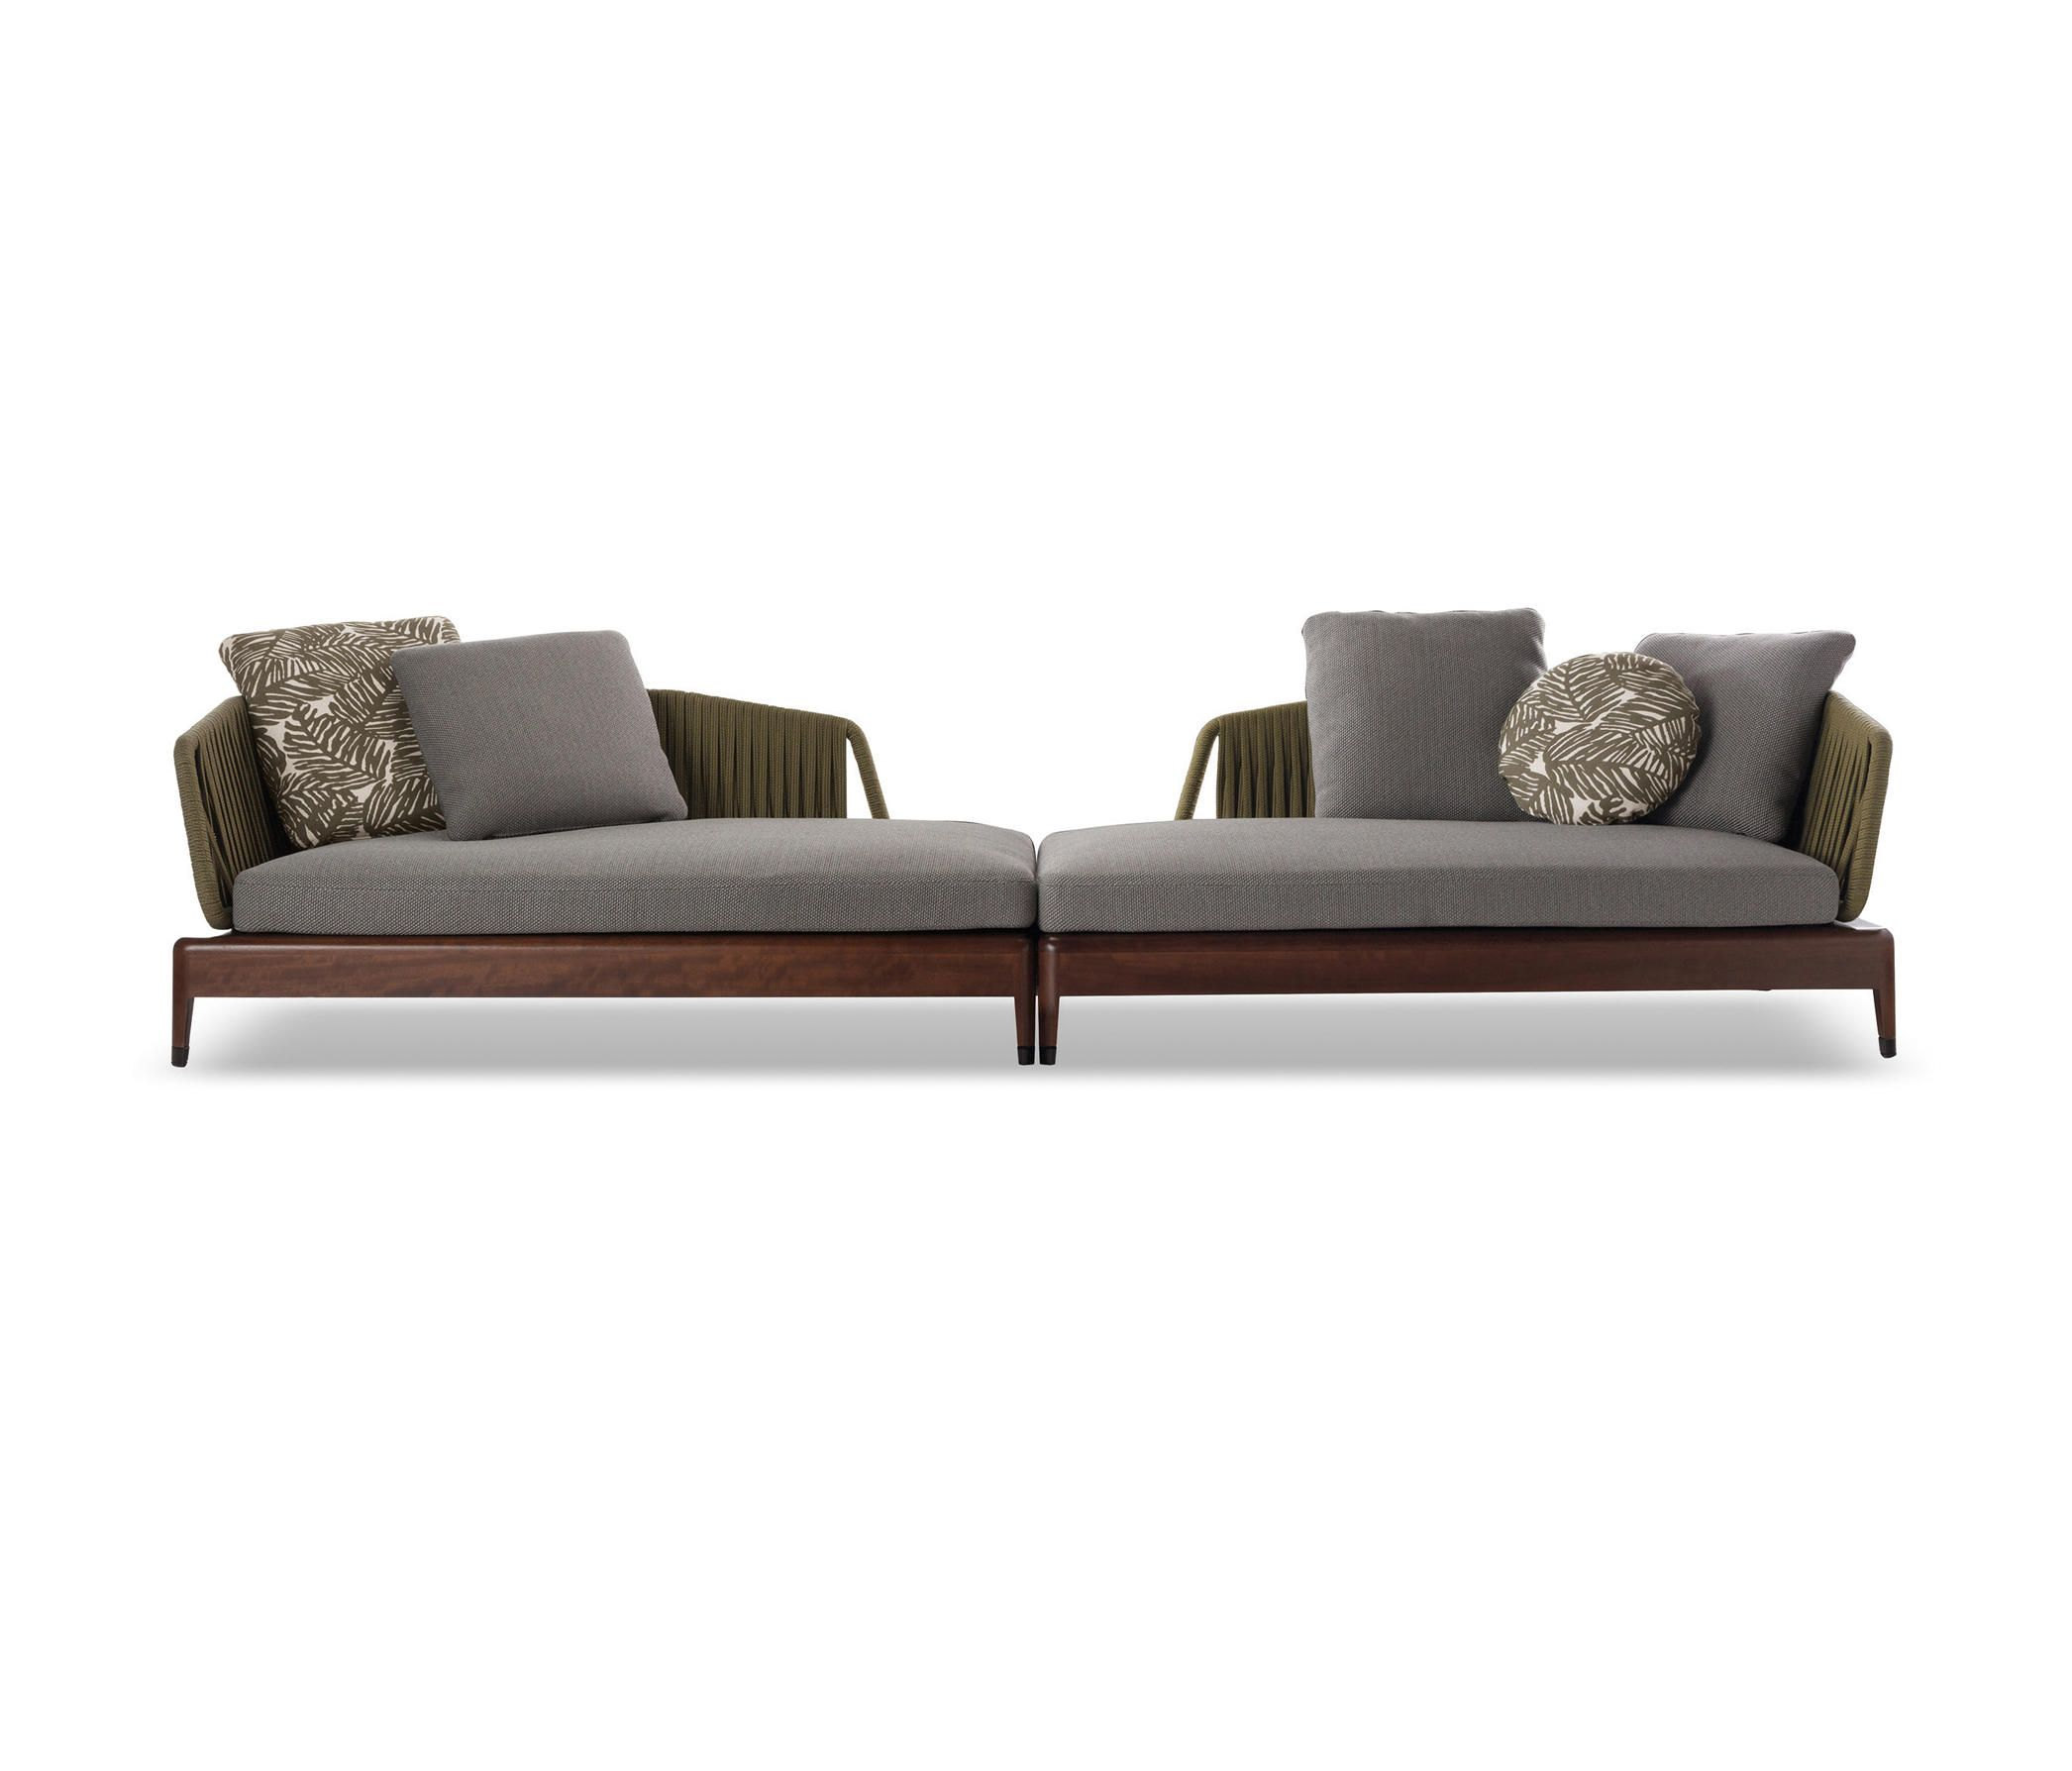 A sofa without armrests and backrest is what is an Ottoman 33